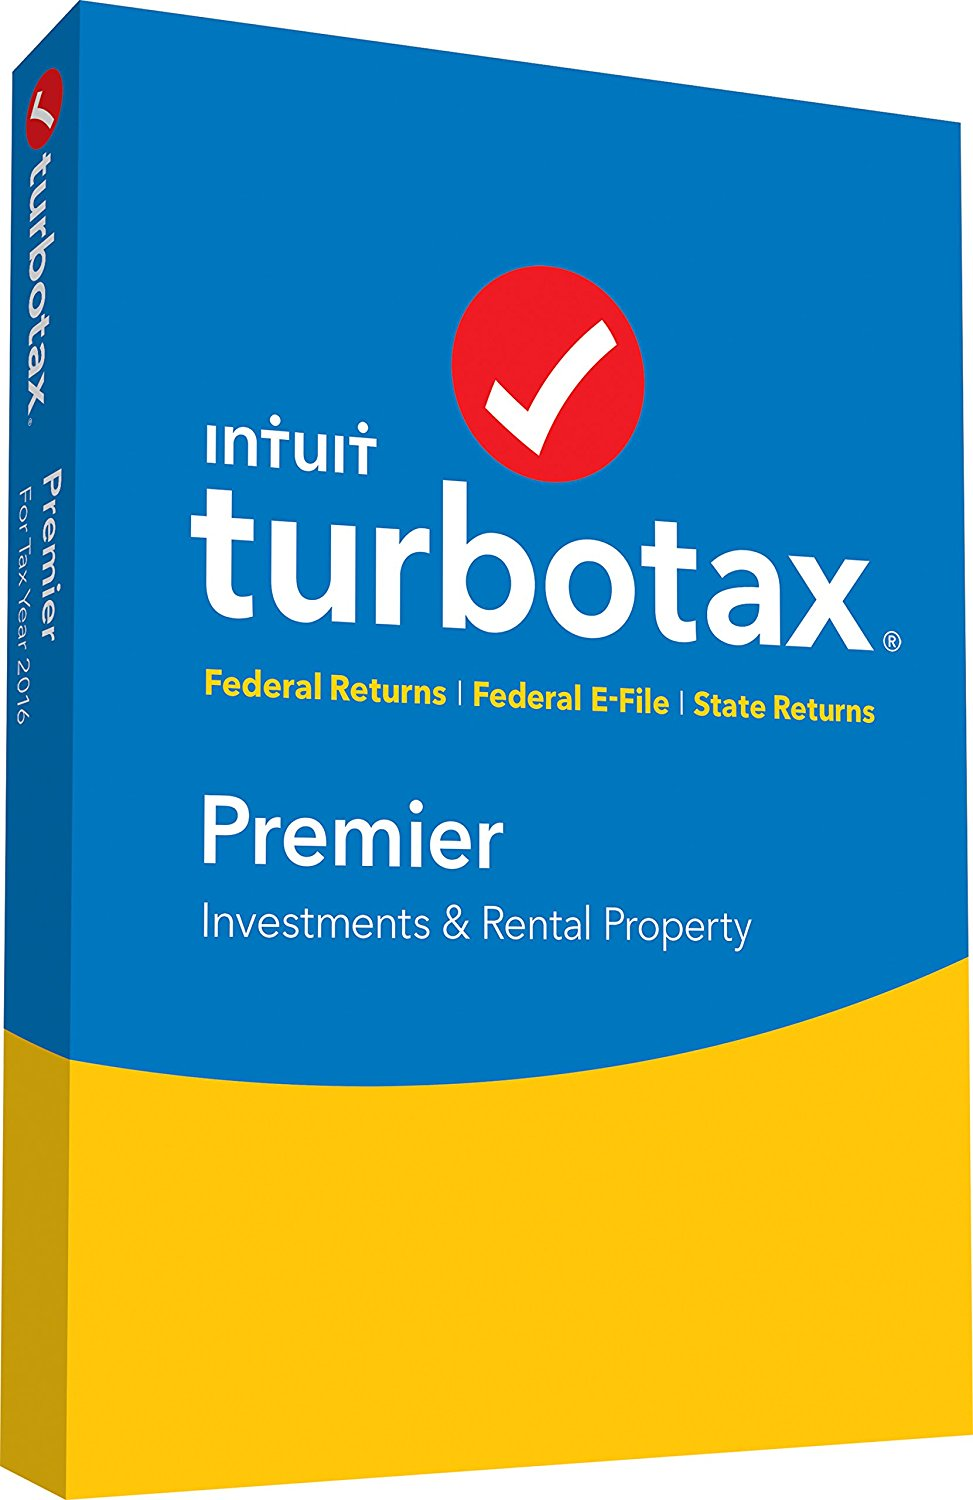 promo on TurboTax 2016 and Quicken 2017